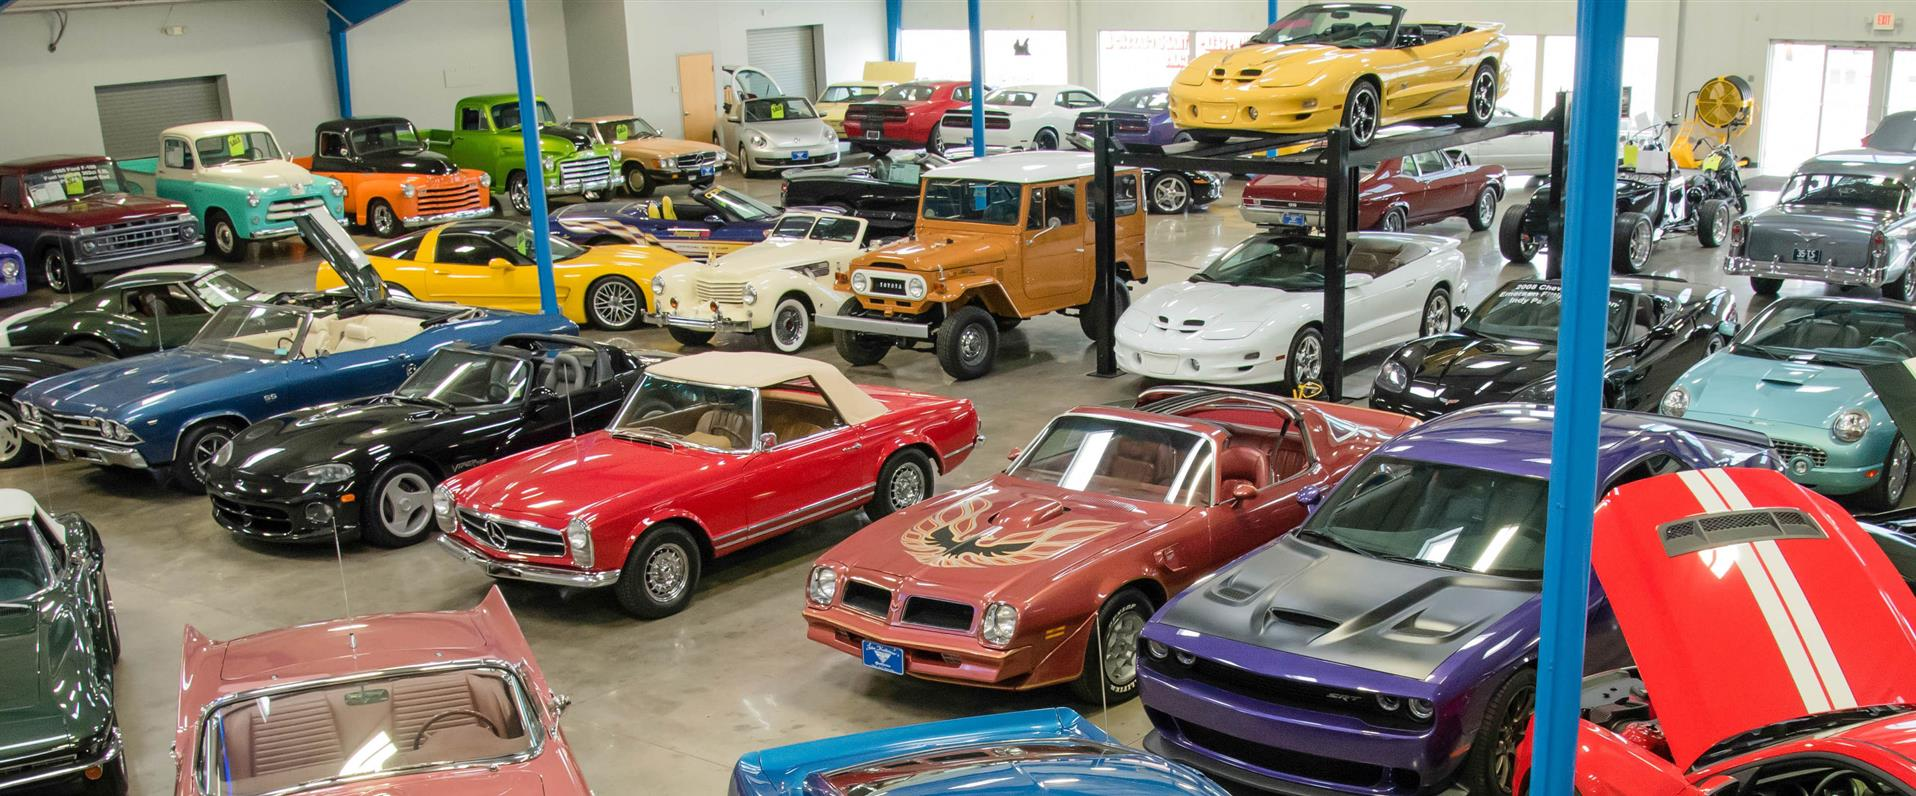 Jk S Galleria Of Vintage Classic And Pristine Cars Salem Oh New